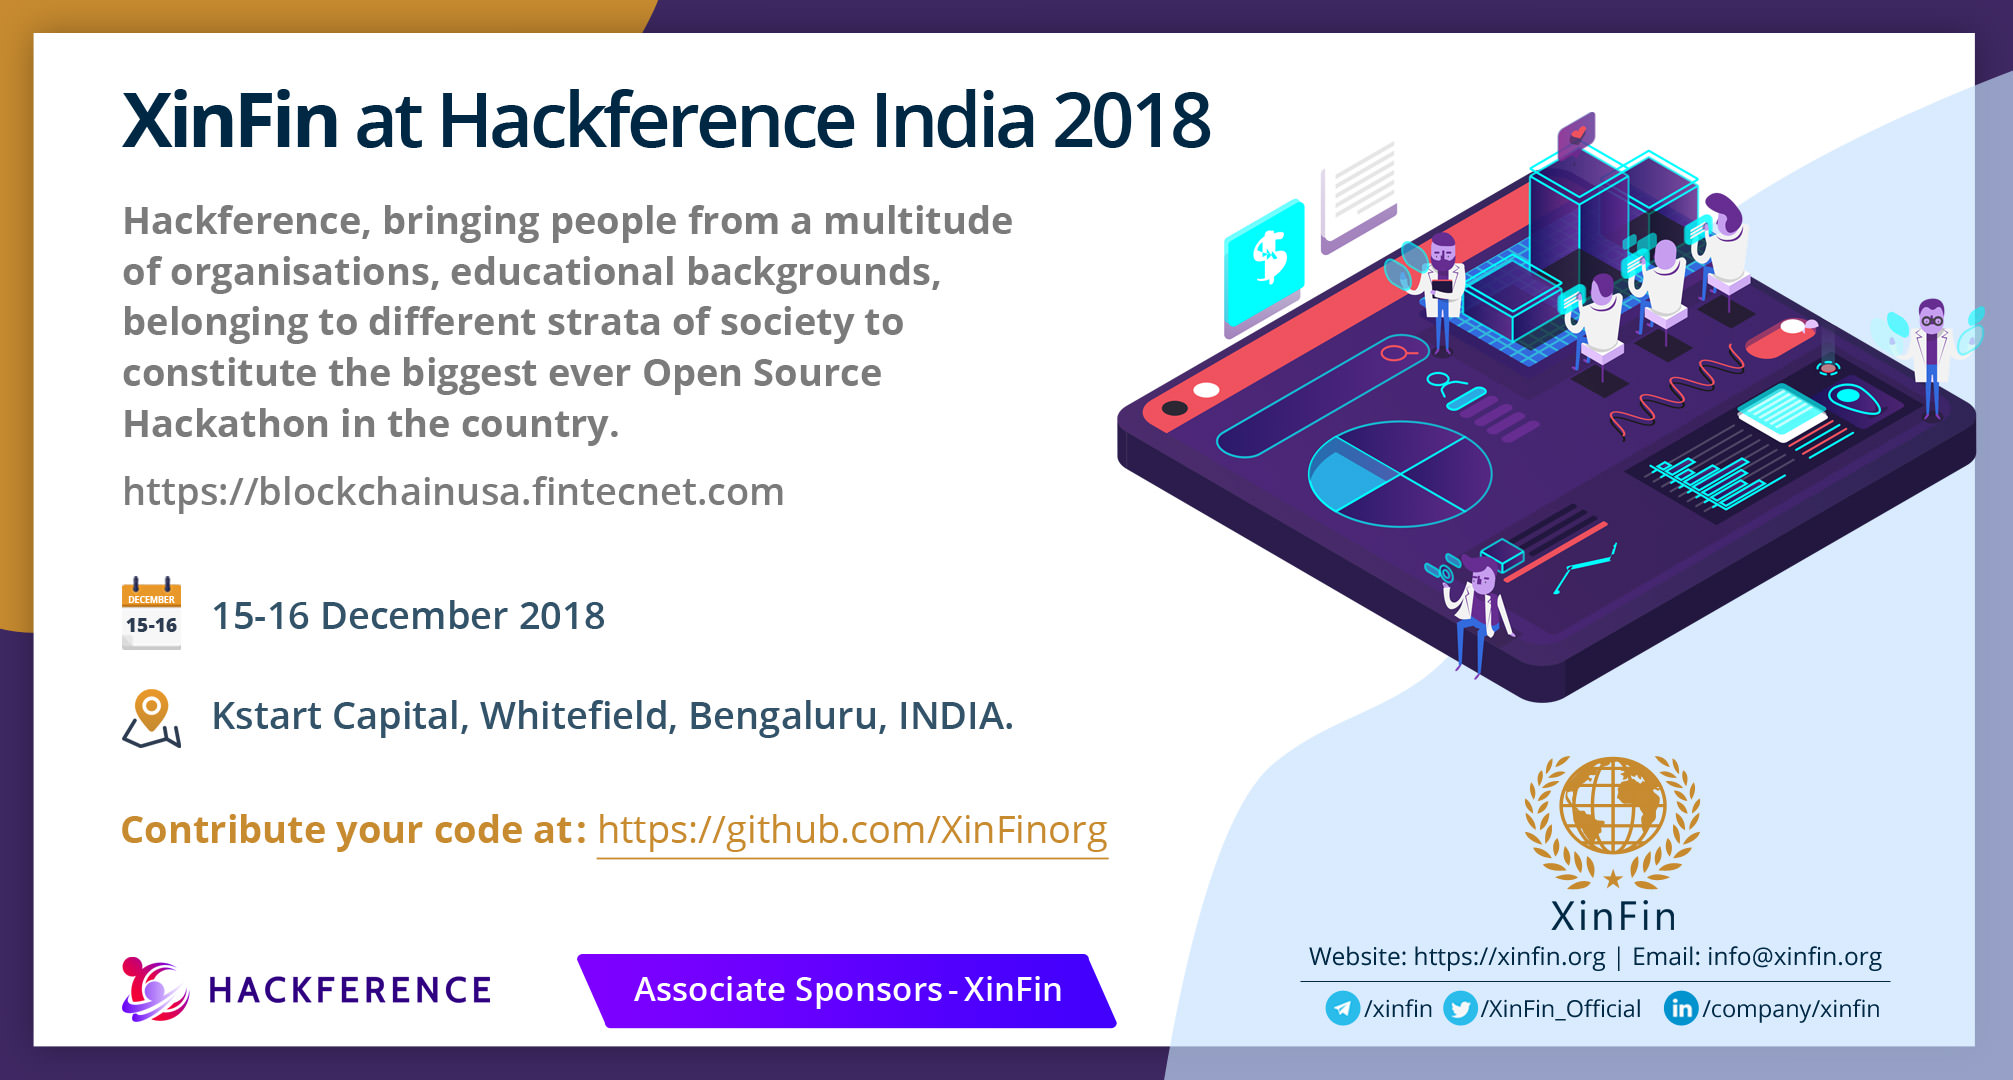 XinFin at Hackference India 2018